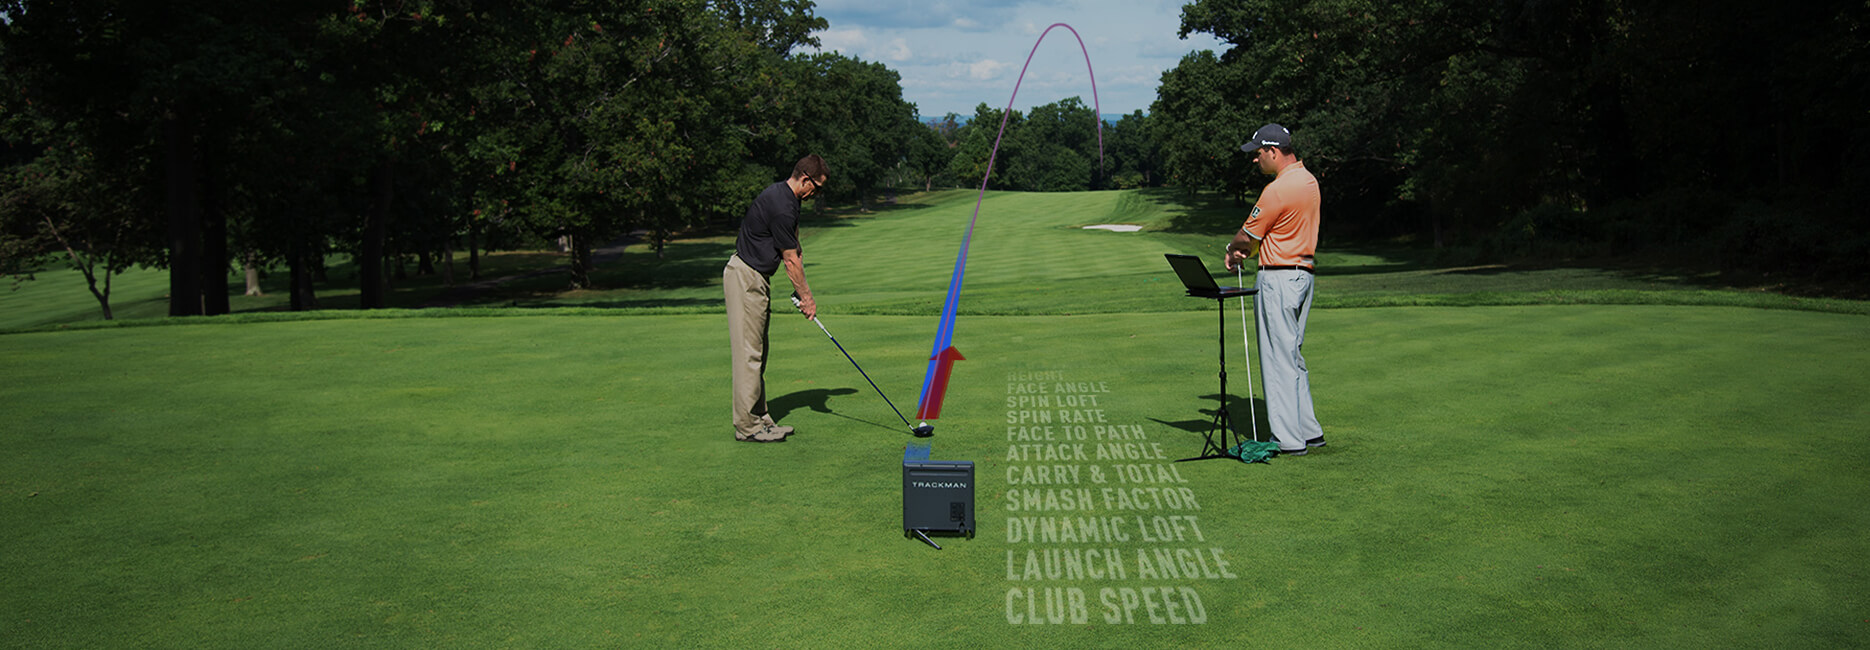 TrackMan-What-We-Track